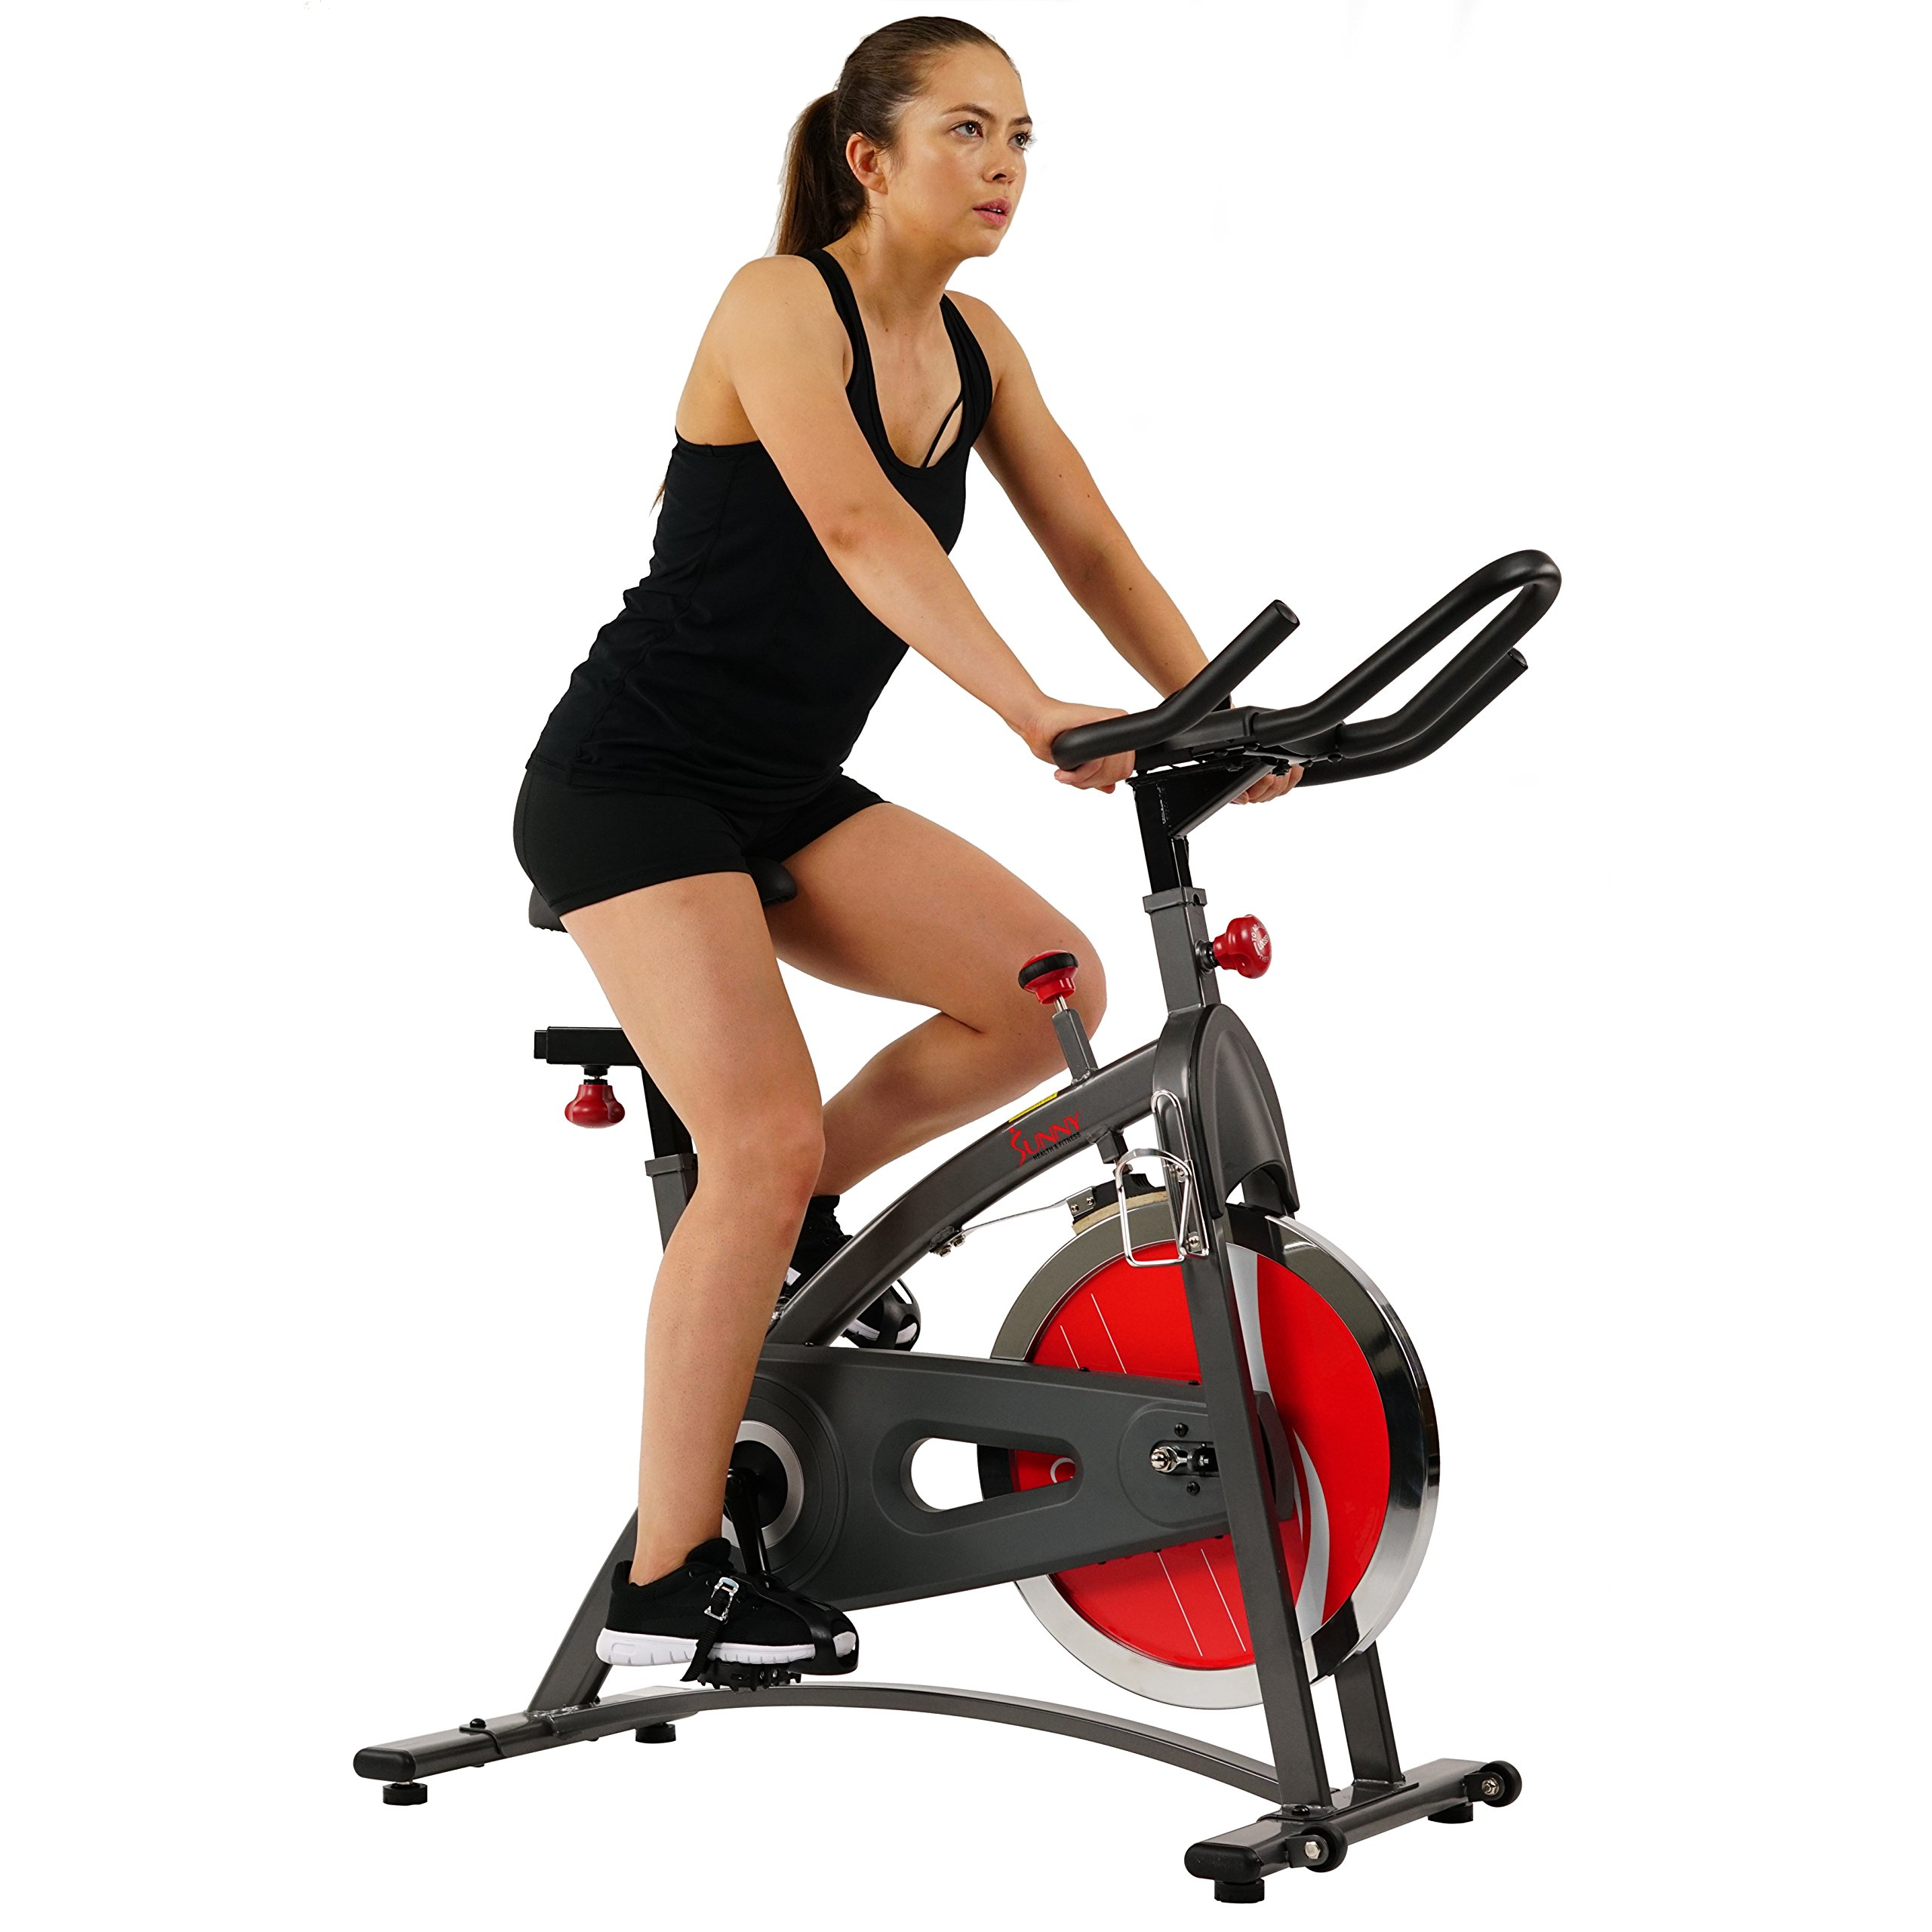 Sunny Health & Fitness Belt Drive Indoor Cycling Bike SF-B1423 by Sunny Health & Fitness (Image #12)